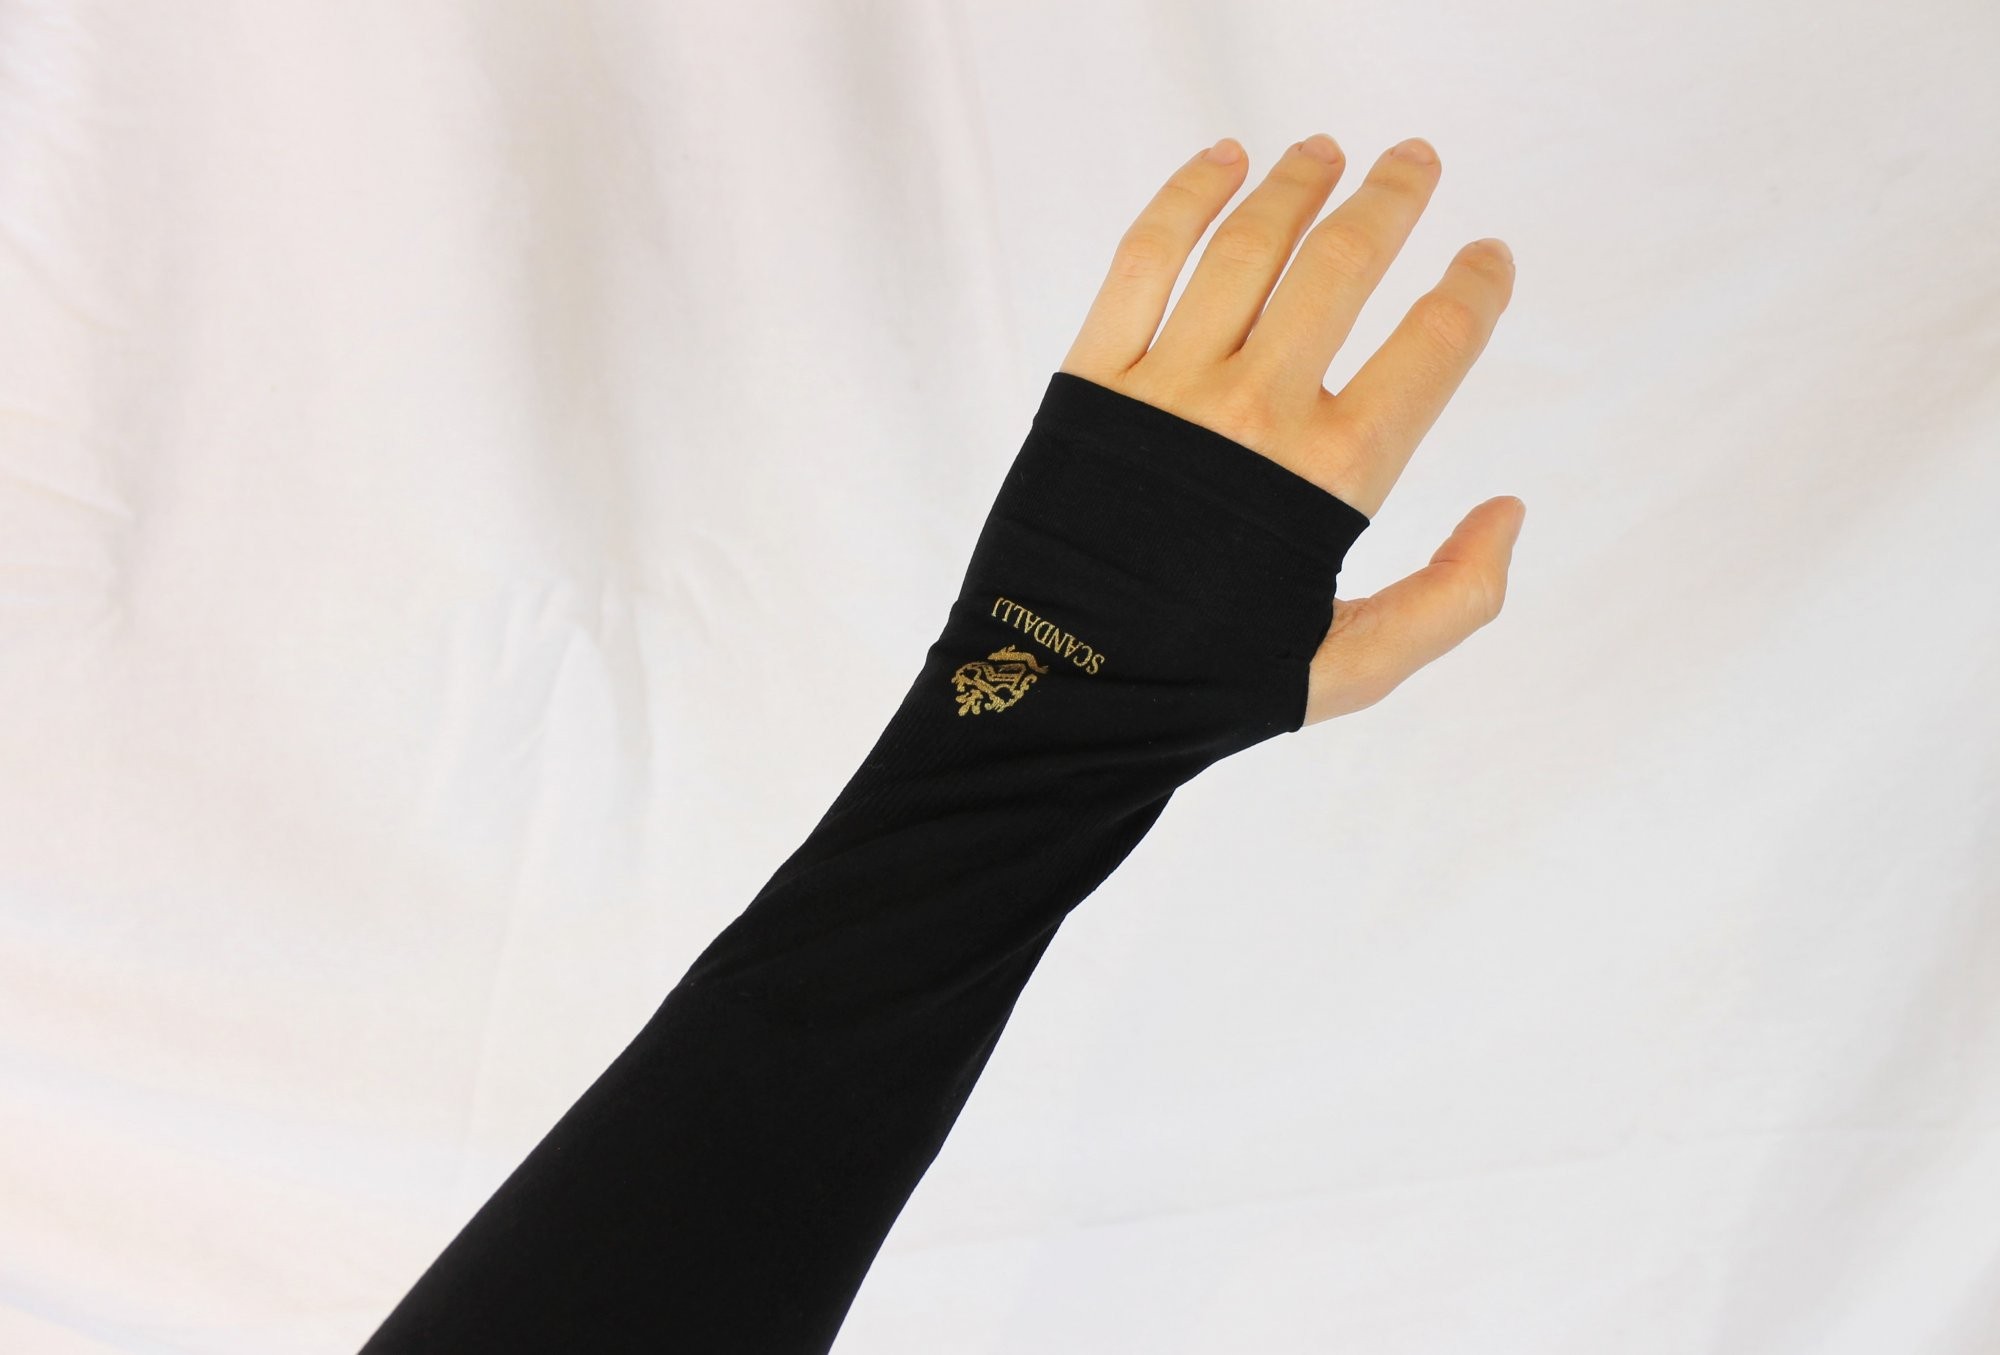 NEW Scandalli Accordion Glove for Support, Comfort and Performance of the Left Hand Wrist